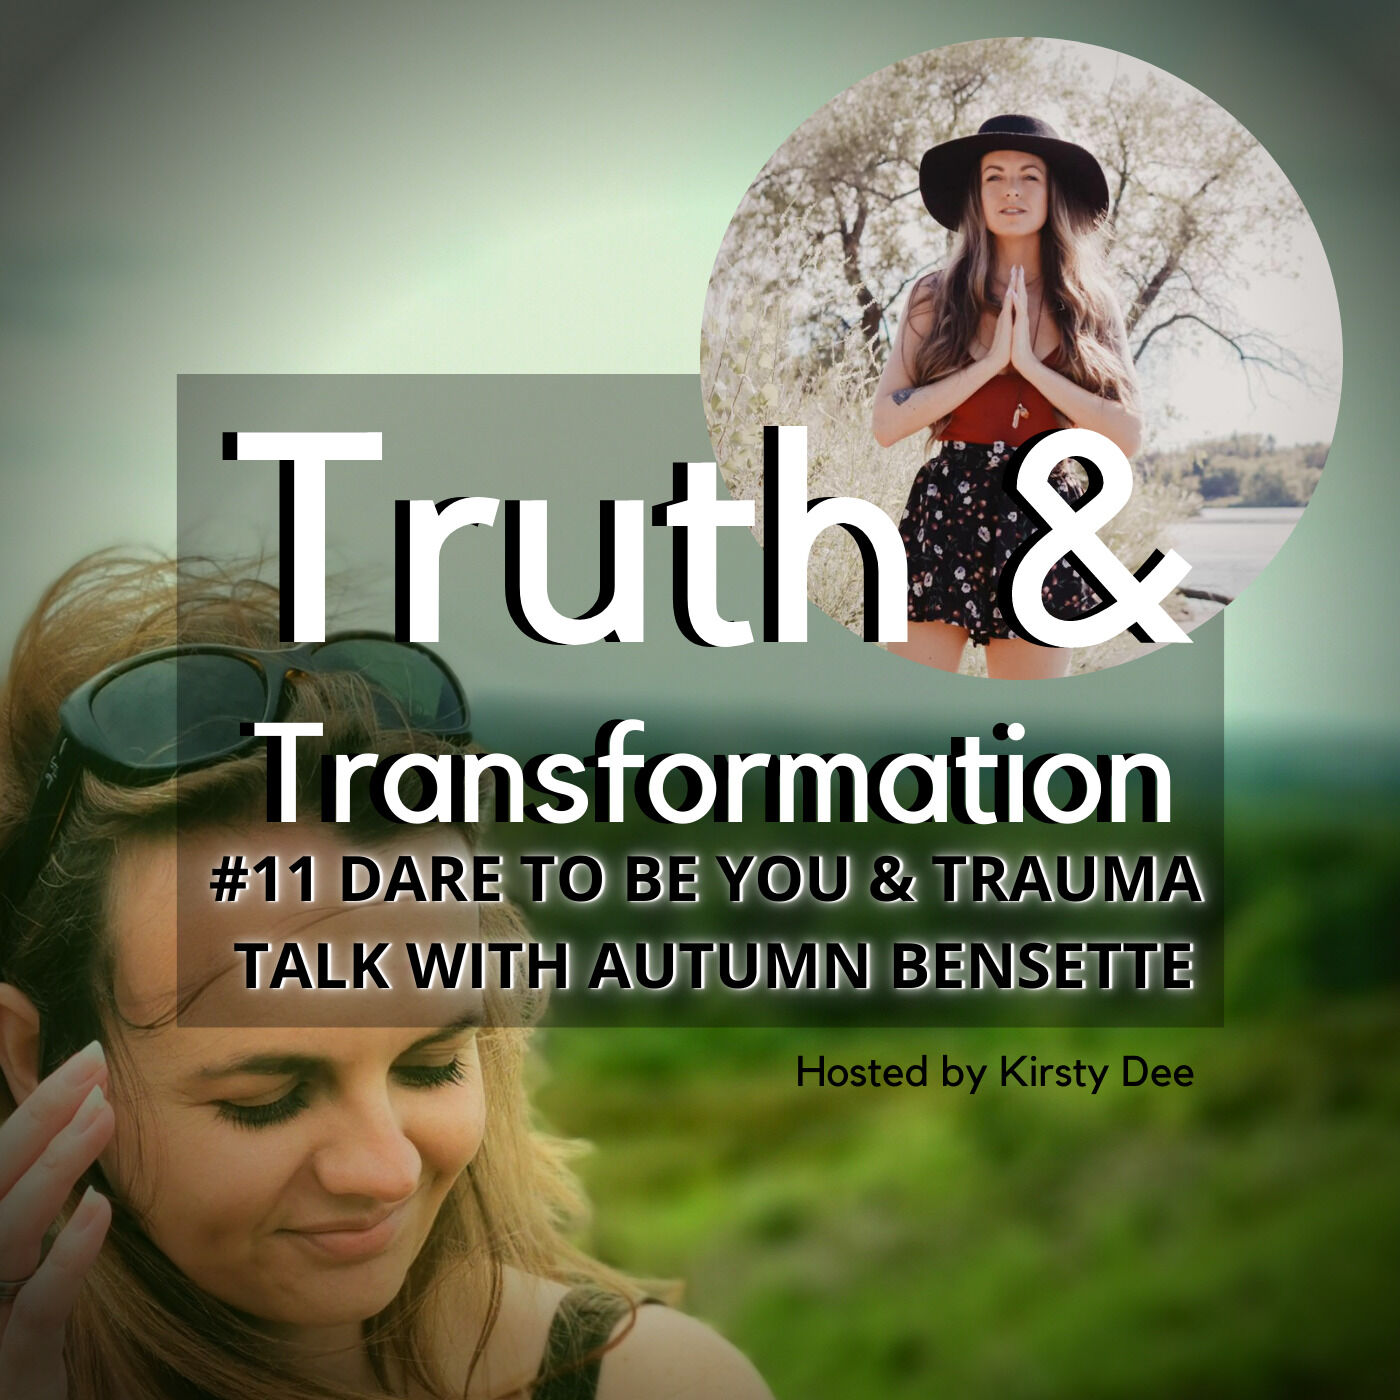 #11 DARE TO BE YOU & TRAUMA TALK WITH AUTUMN BENSETTE